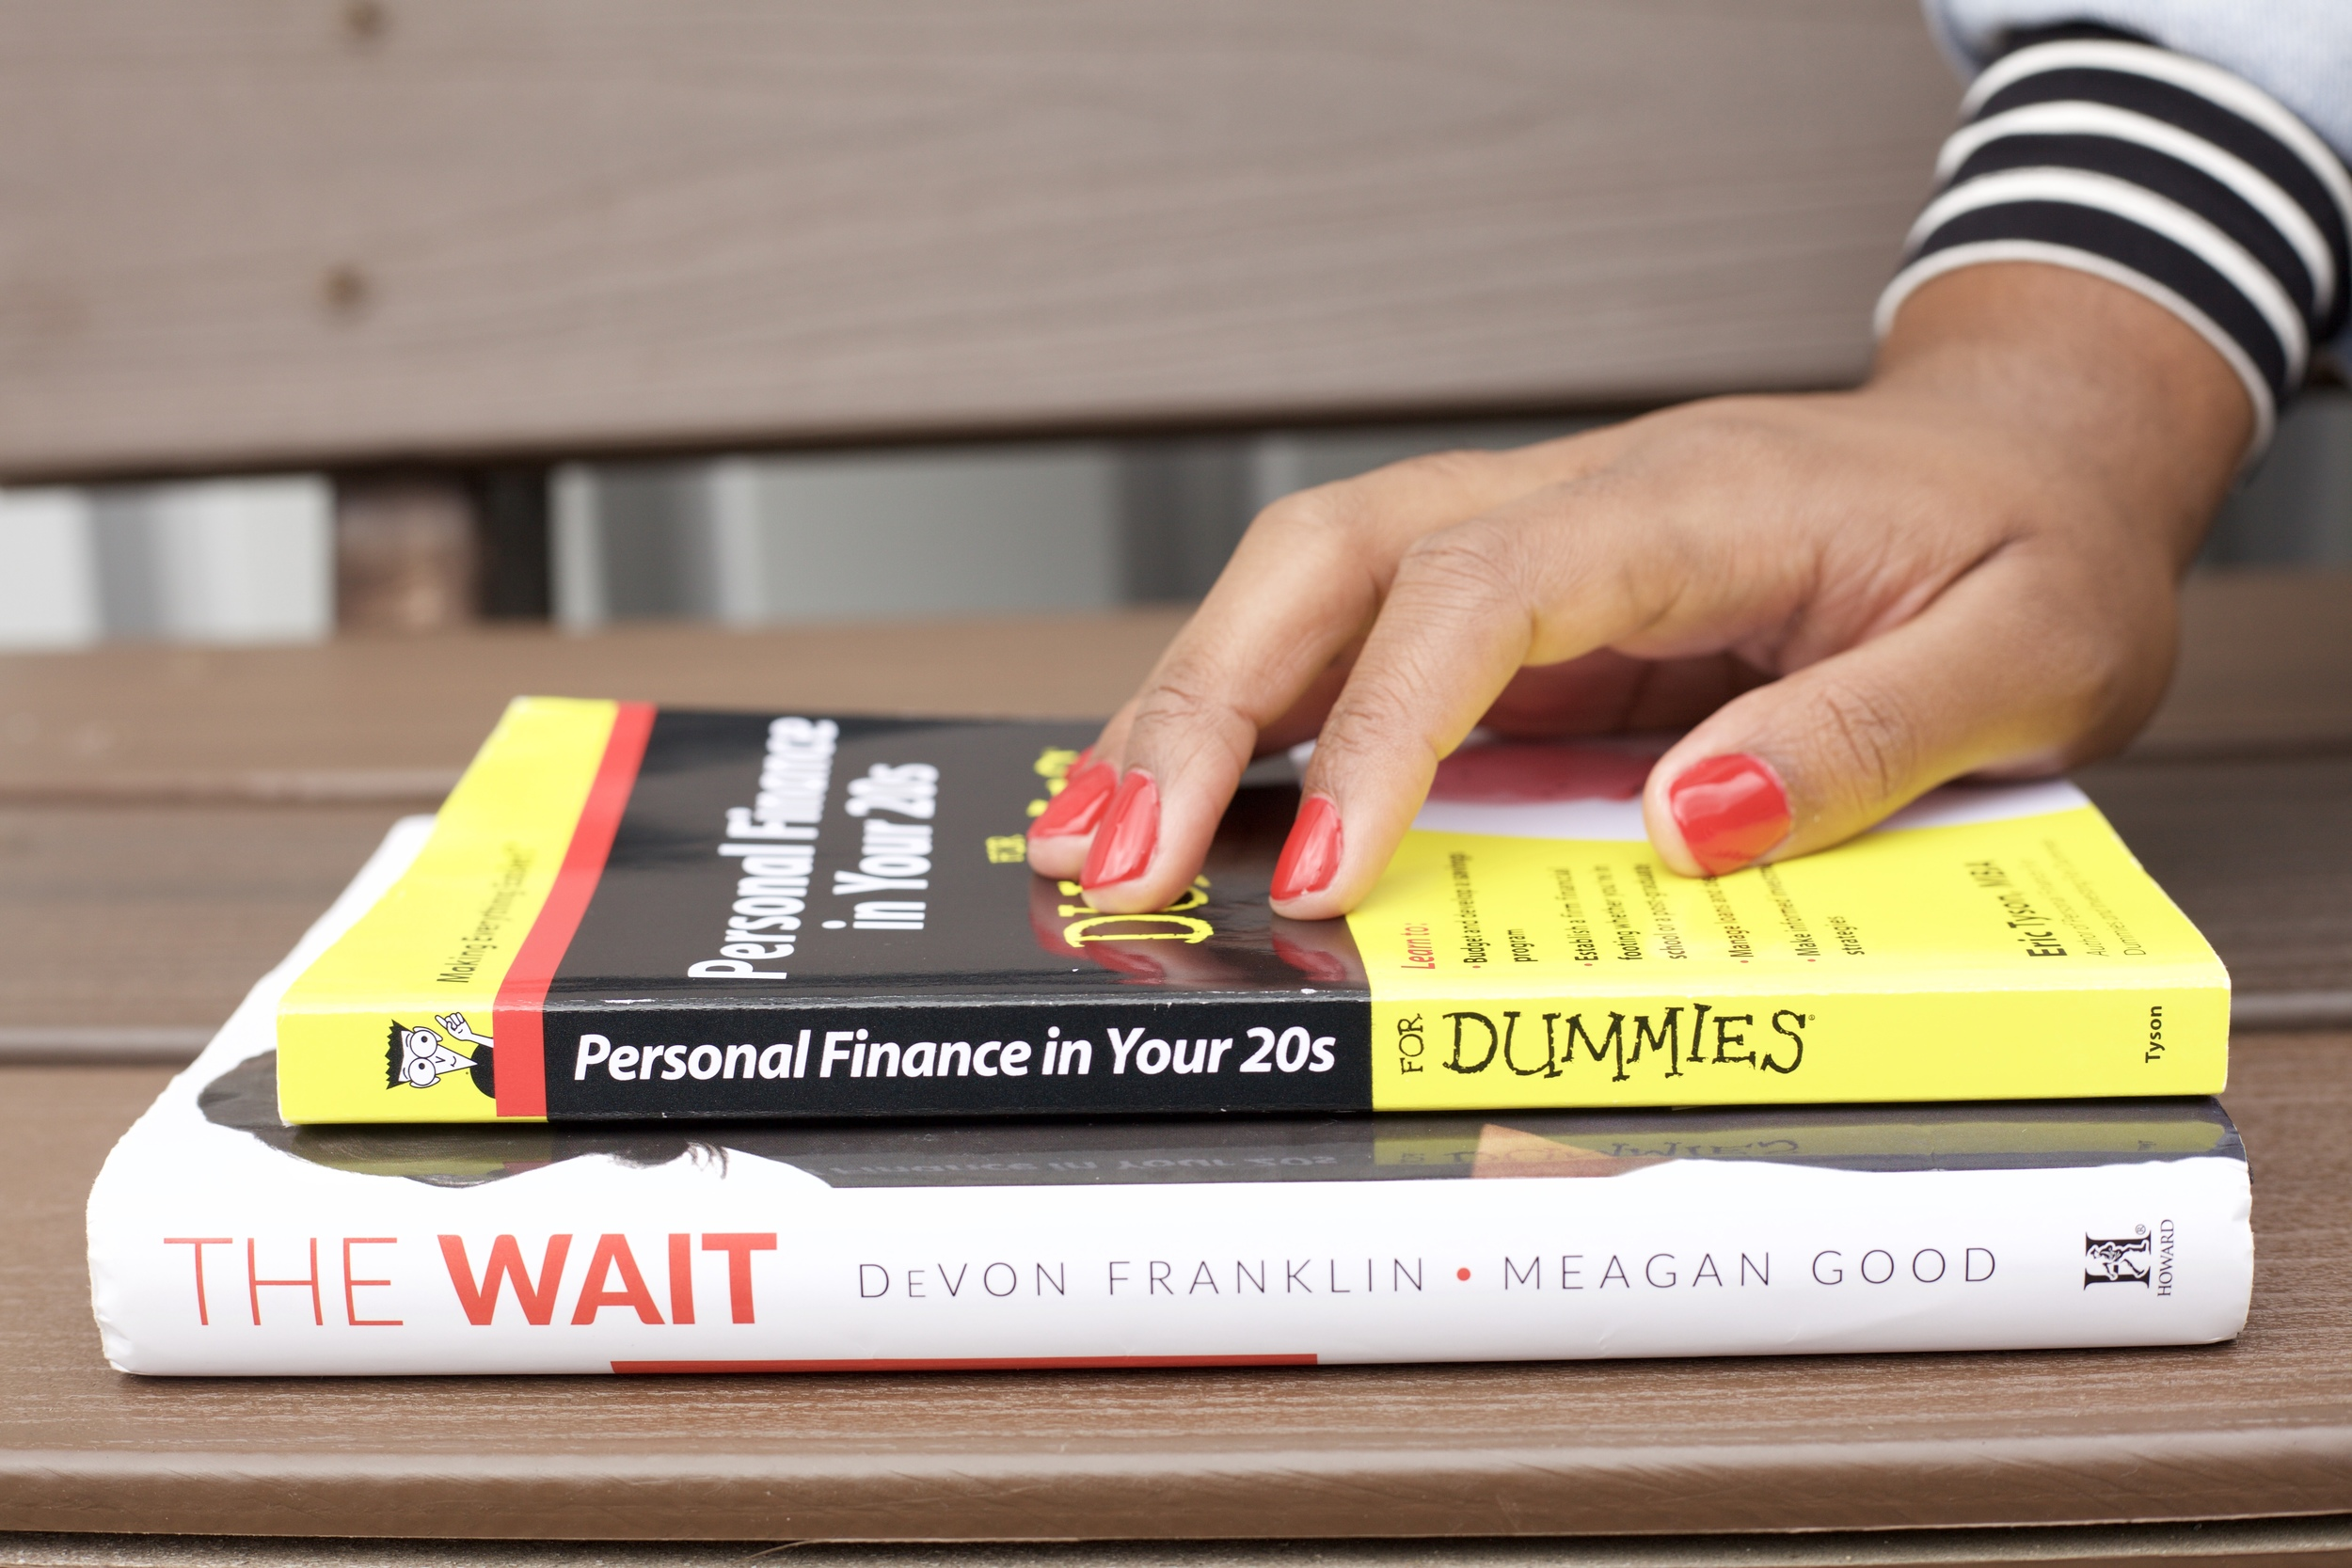 Personal finance in your 20s for dummies and the way by devon franklin and megan good